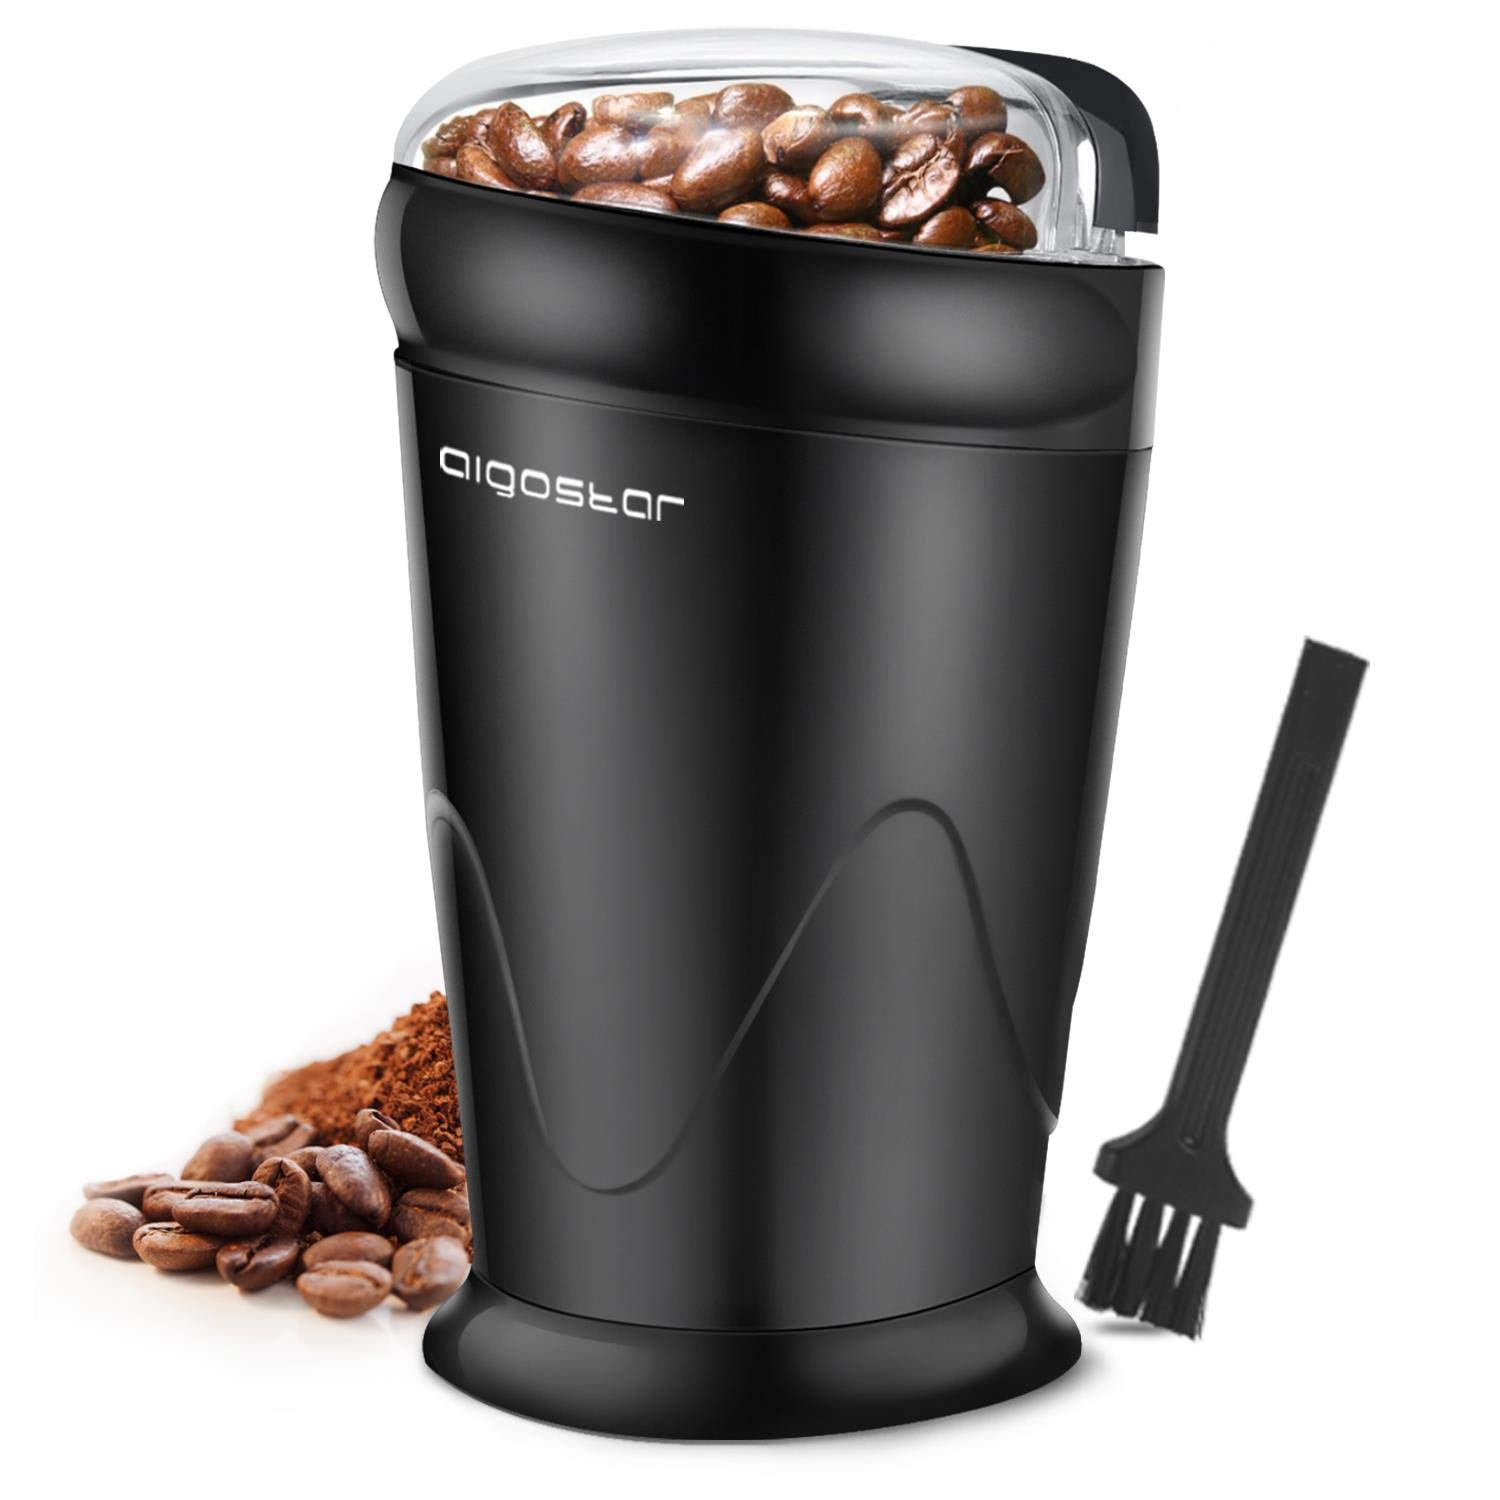 AIGOSTAR Coco- Electric Coffee Grinder with Stainless Steel Blades | Grinds Coffee Beans, Spices, Nuts and Grains | One-Touch, 60g, Black